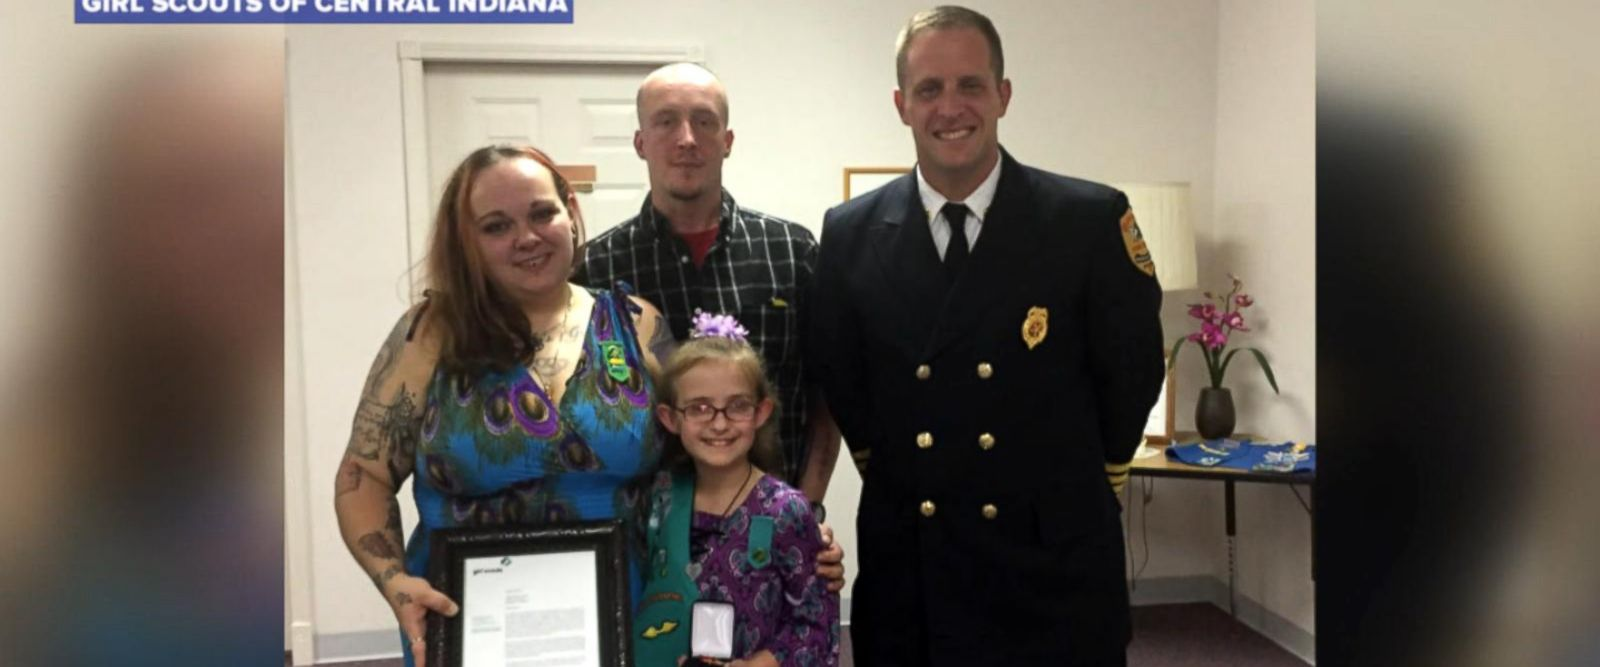 VIDEO: 9-year-old Girl Scout honored for saving mom after car crash